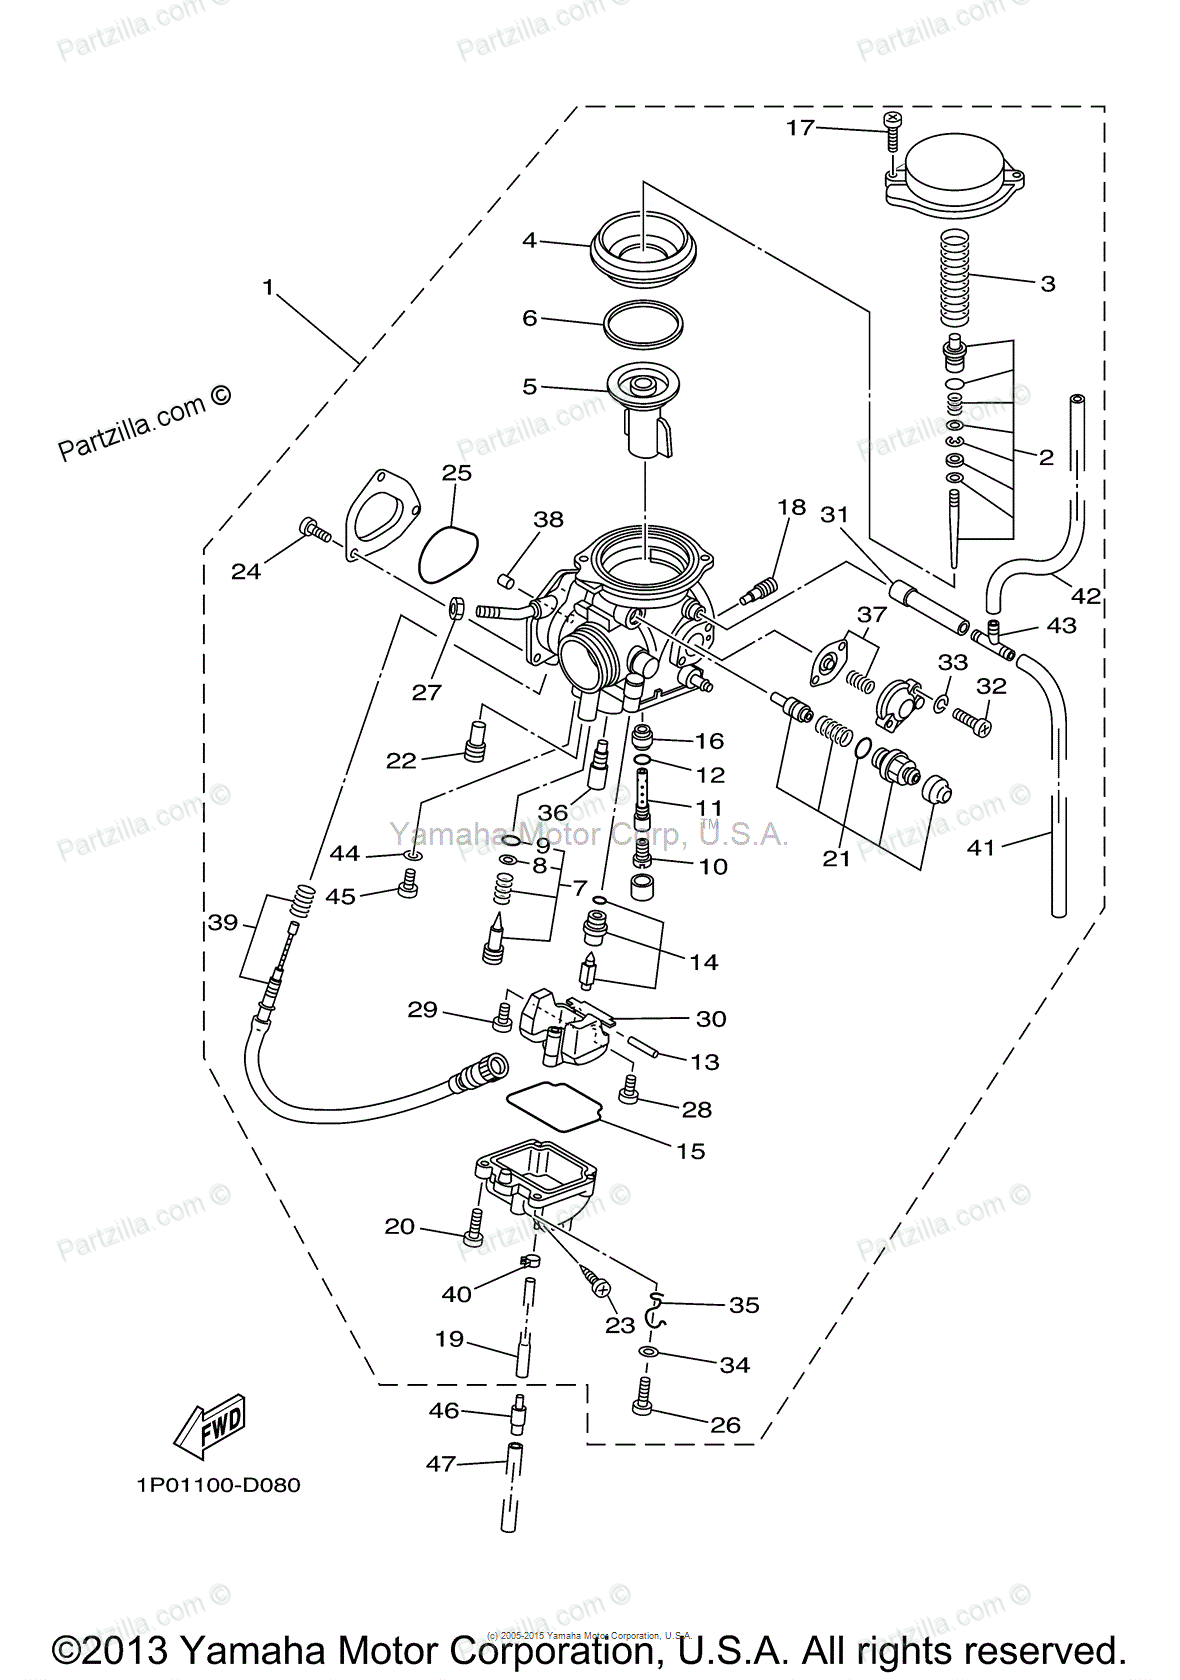 hight resolution of need help 2007 yamaha big bear 250 carb air throttle issues 9a4a53cf95fa786c2da222b86c0e443f8972f9fd